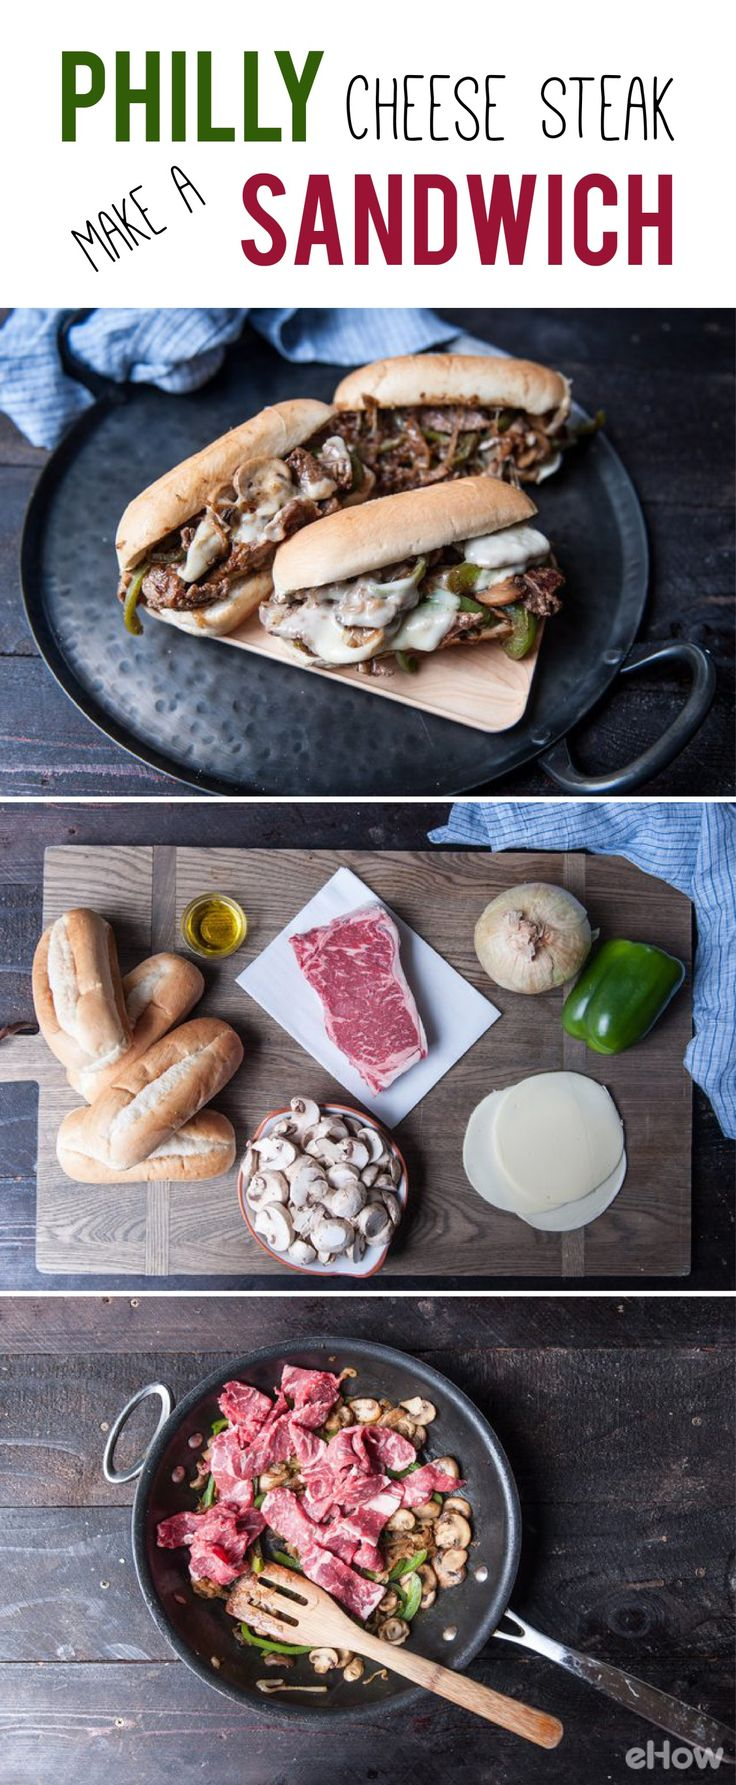 The ultimate Philly Cheese Steak sandwich is made with sweet caramelized onions, tangy provolone, a soft roll and, of course, the flavorful steak! A must have recipe to master ASAP: http://www.ehow.com/how_2118532_philly-cheese-steak-sandwich.html?utm_source=pinterest.com&utm_medium=referral&utm_content=freestyle&utm_campaign=fanpage